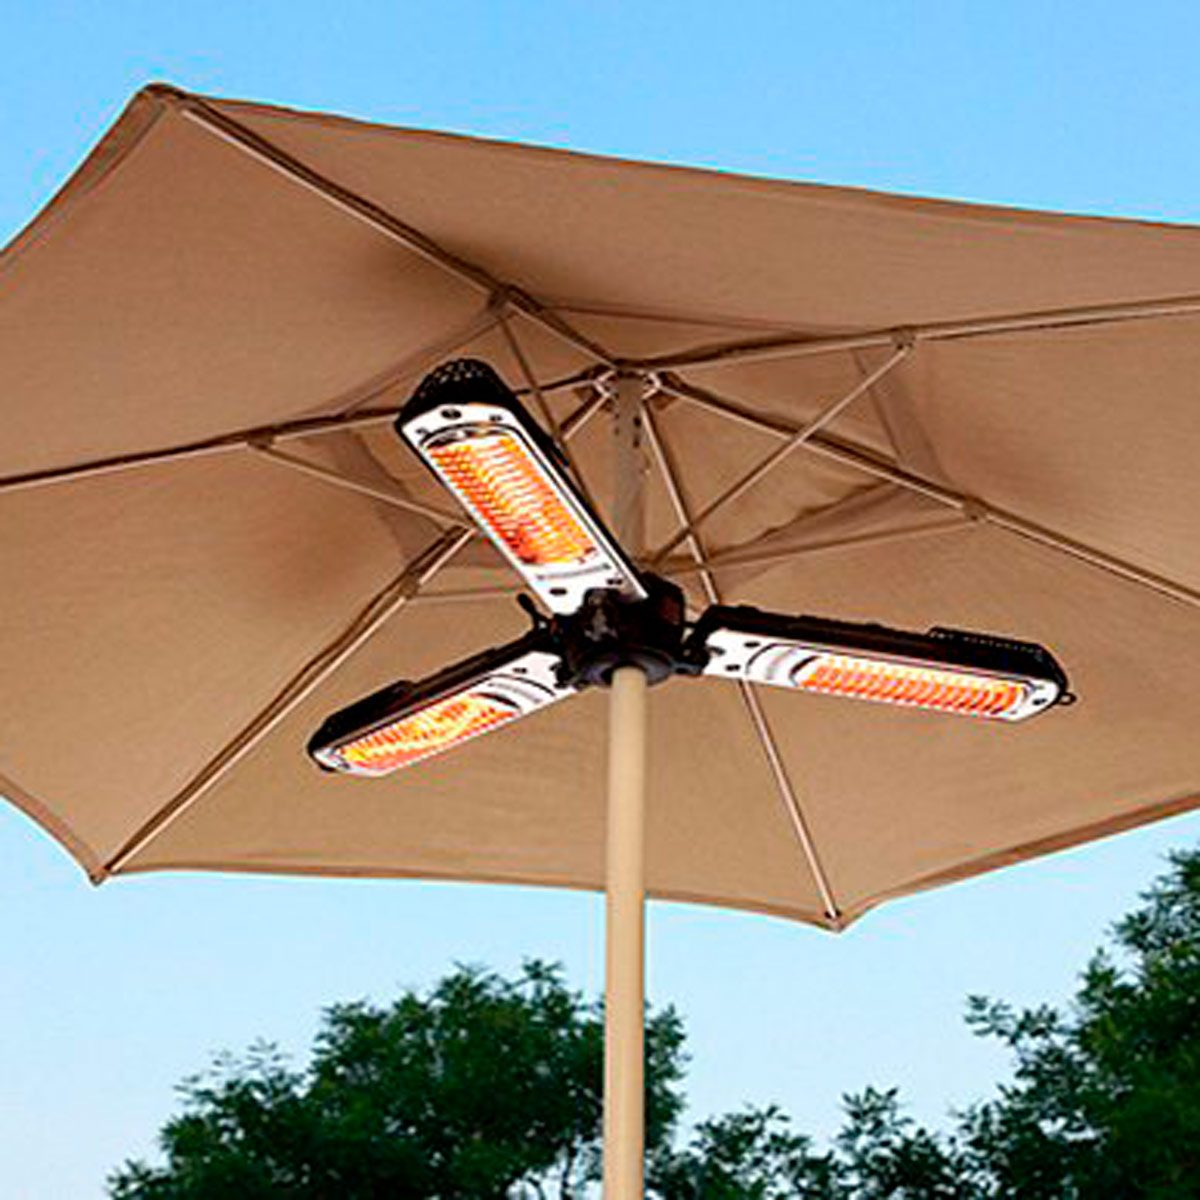 13 Outdoor Patio Heaters To Keep You